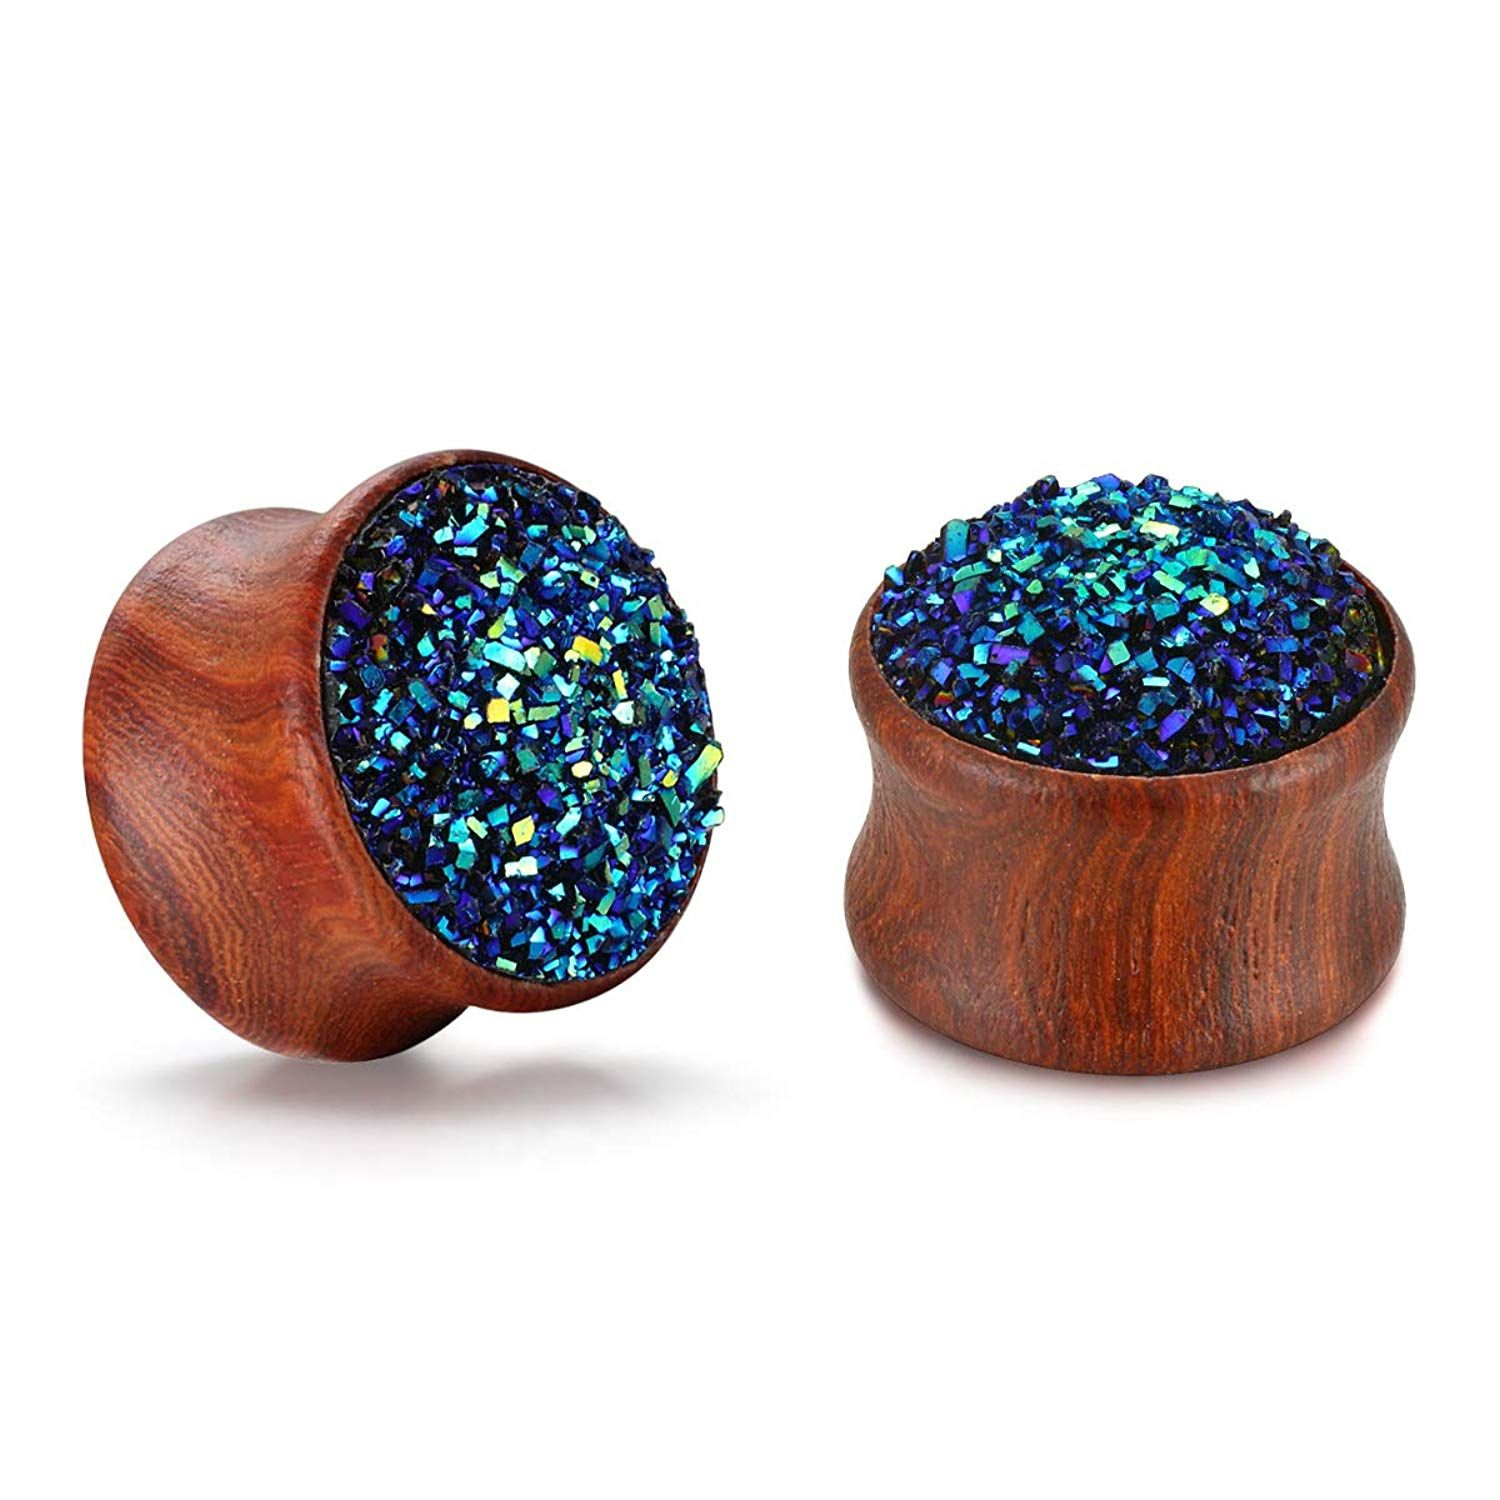 Body piercing areas  Angel King Nature Wooden Ear Plugs Tunnels Multicolored Gauges